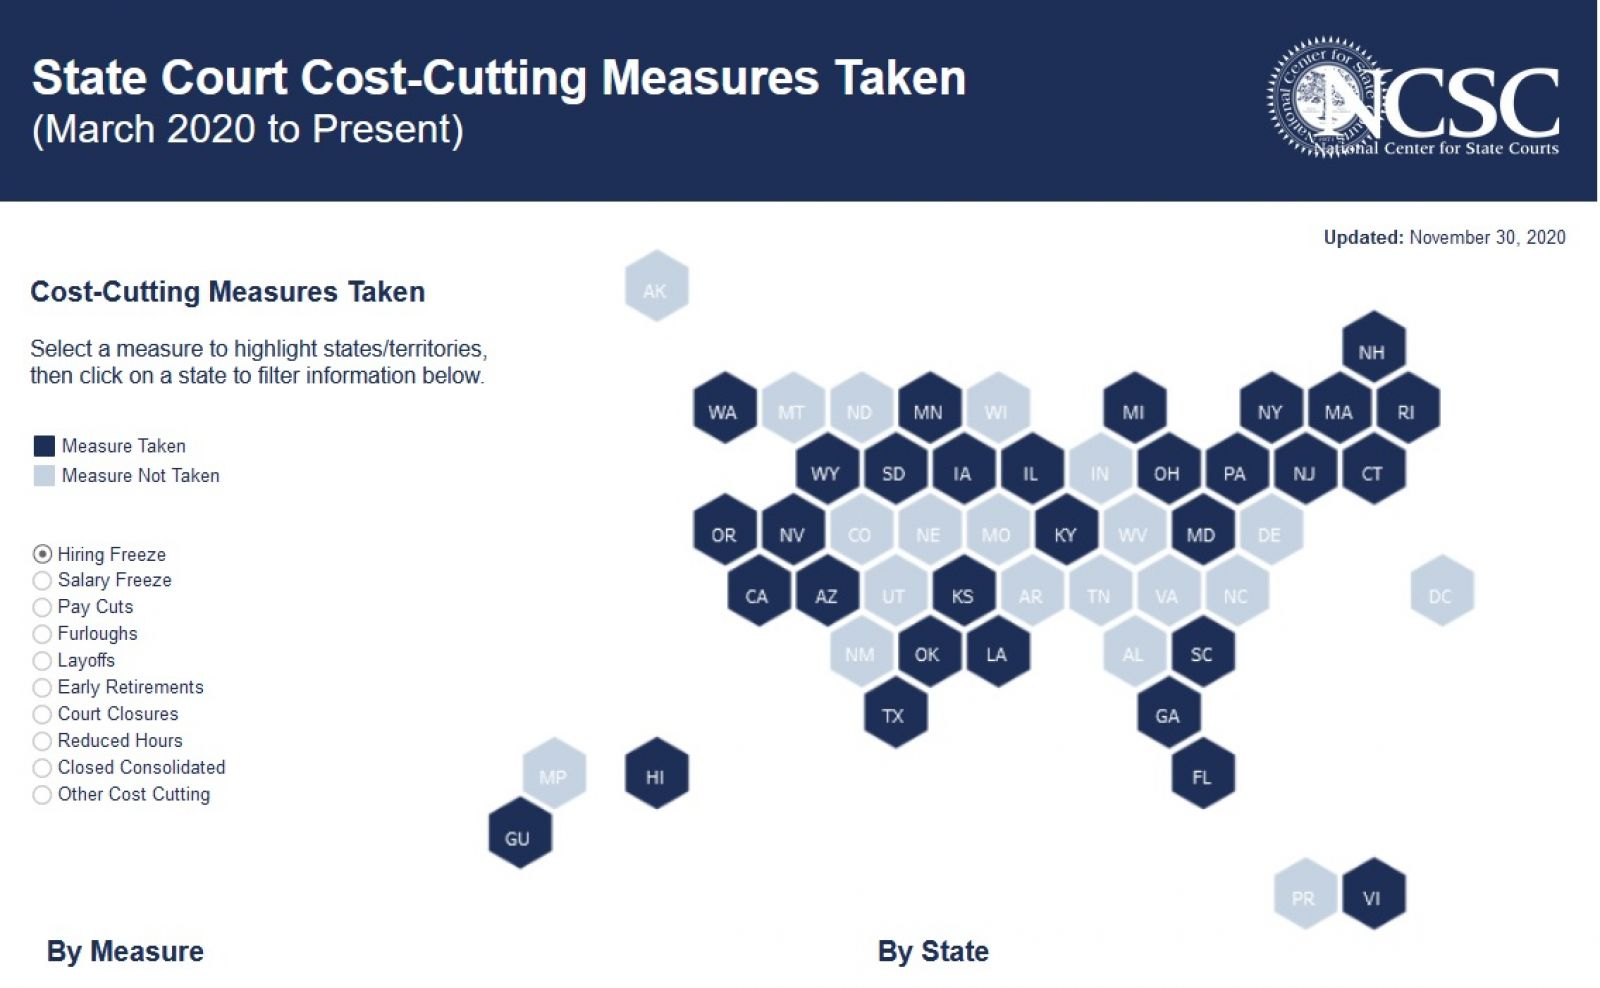 State Court Cost-Cutting Measures banner image